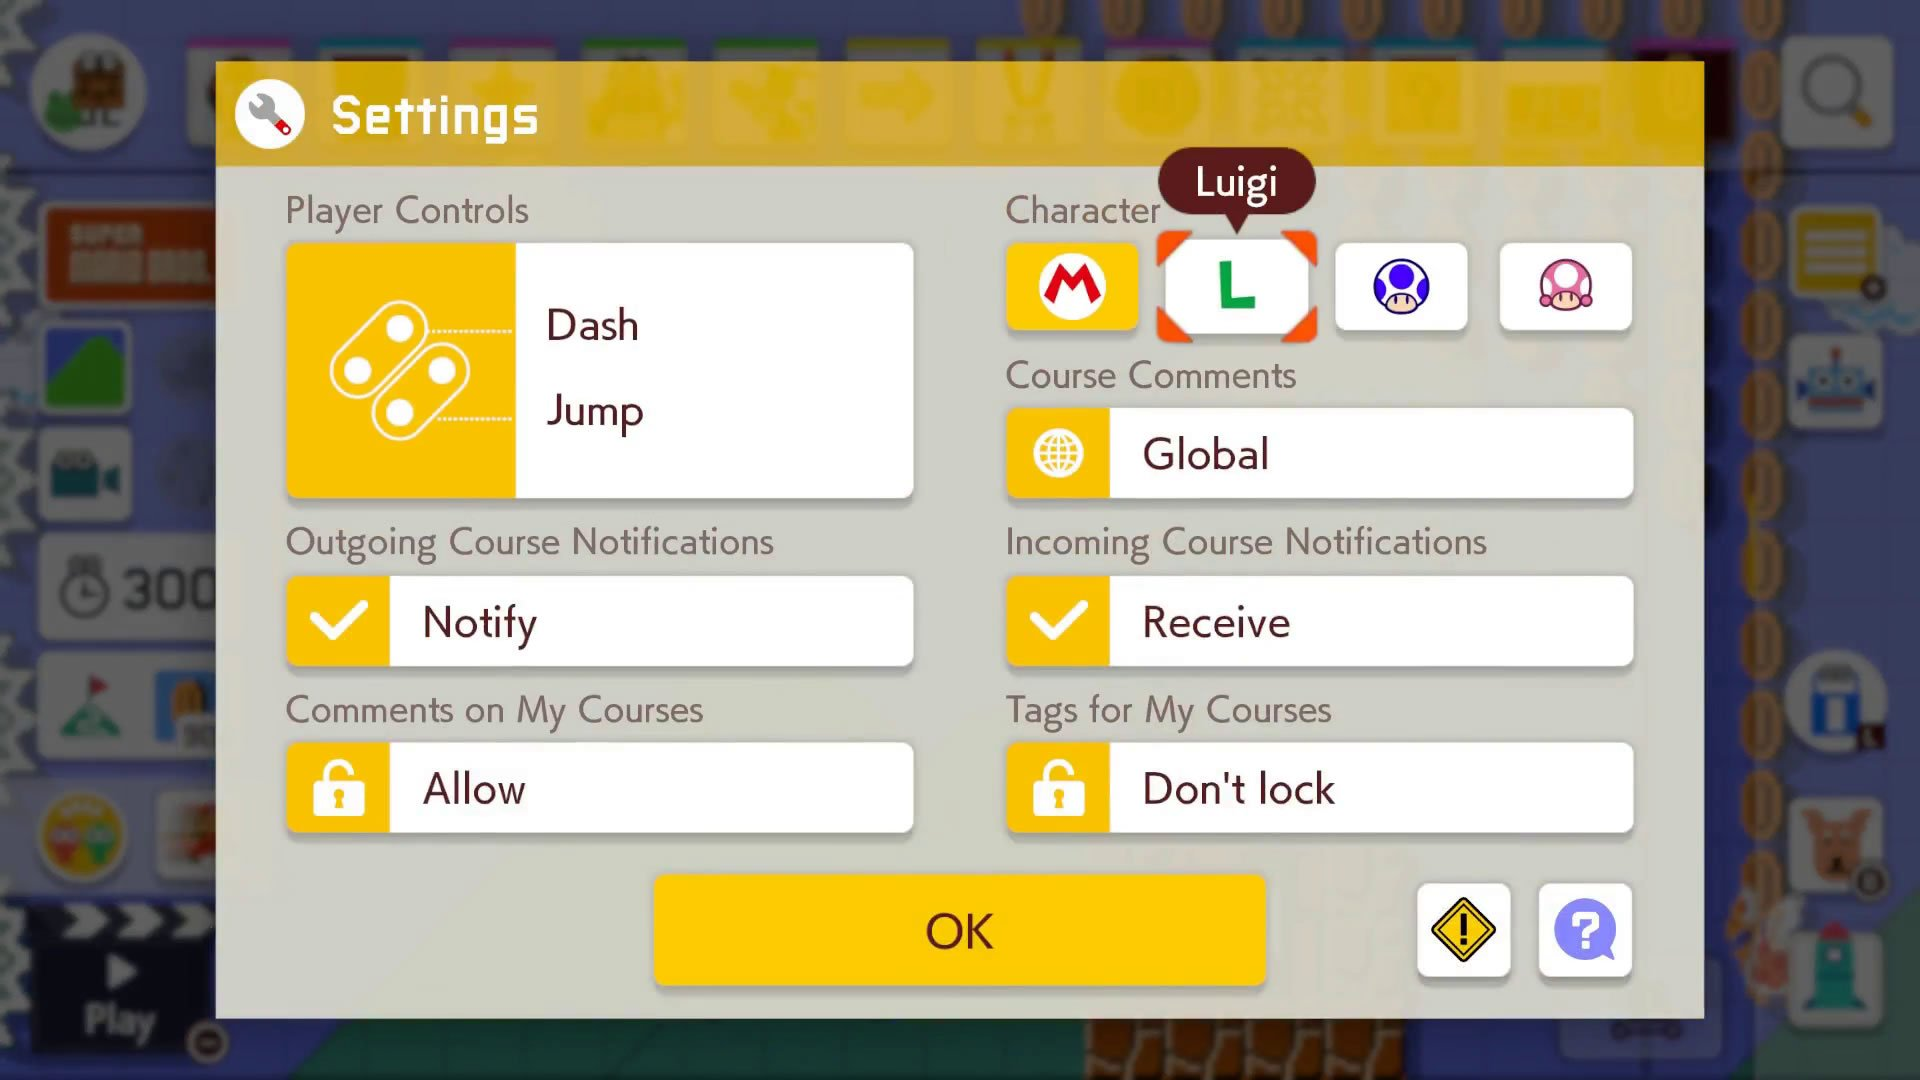 How to change characters in Super Mario Maker 2 settings menu